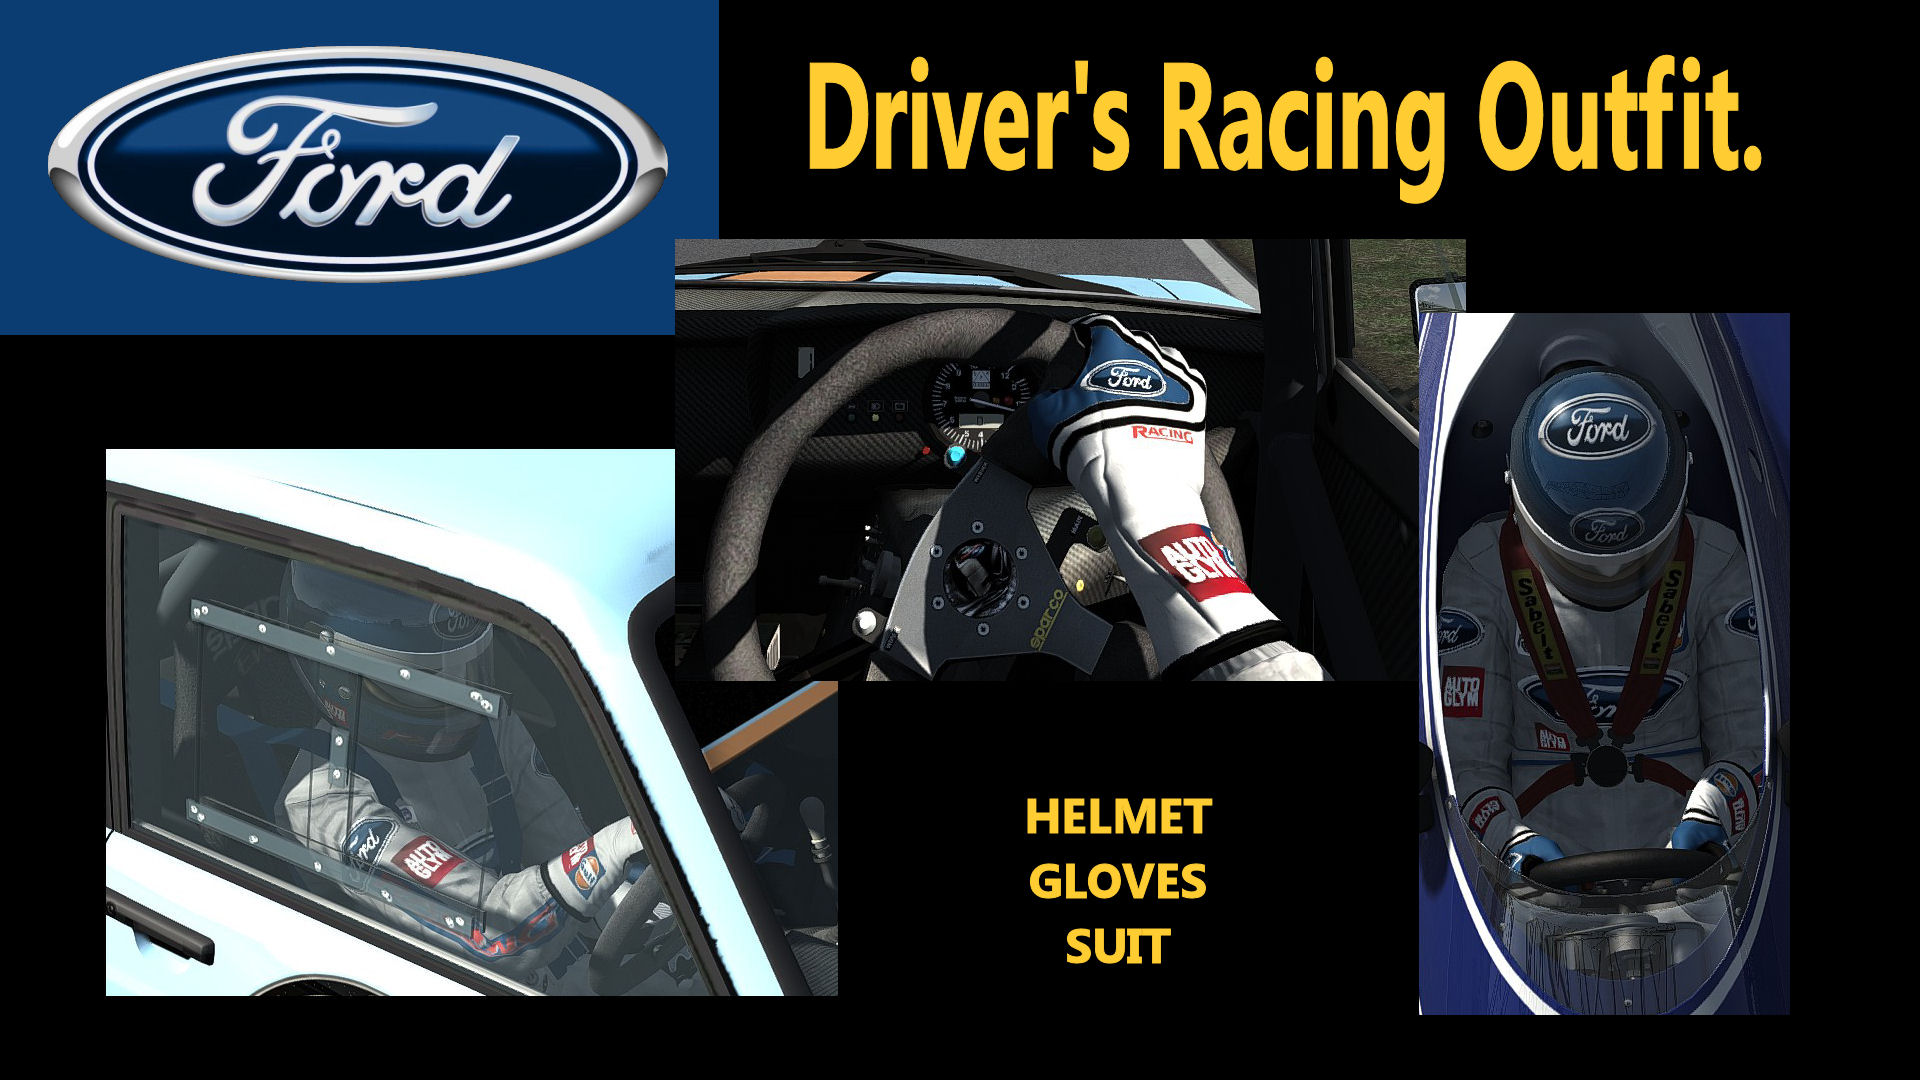 Ford Driver Suit.jpg